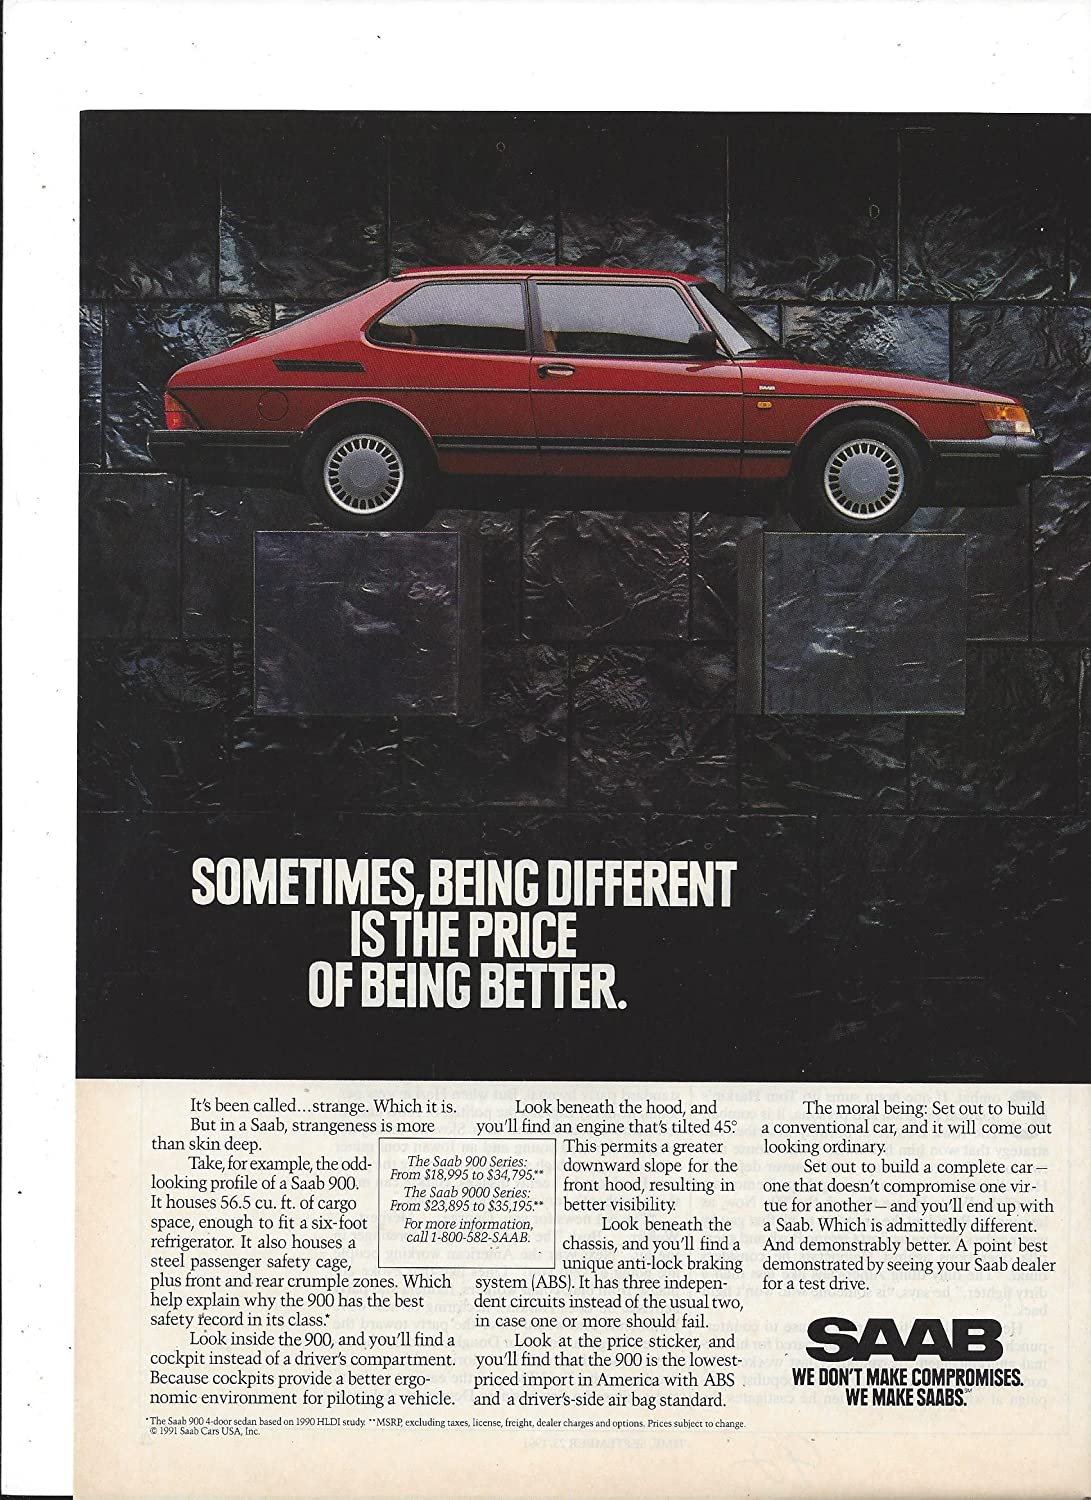 Amazon.com: MAGAZINE ADVERTISEMENT For 1992 Red Saab 900 Turbo Convertible Cars: Entertainment Collectibles